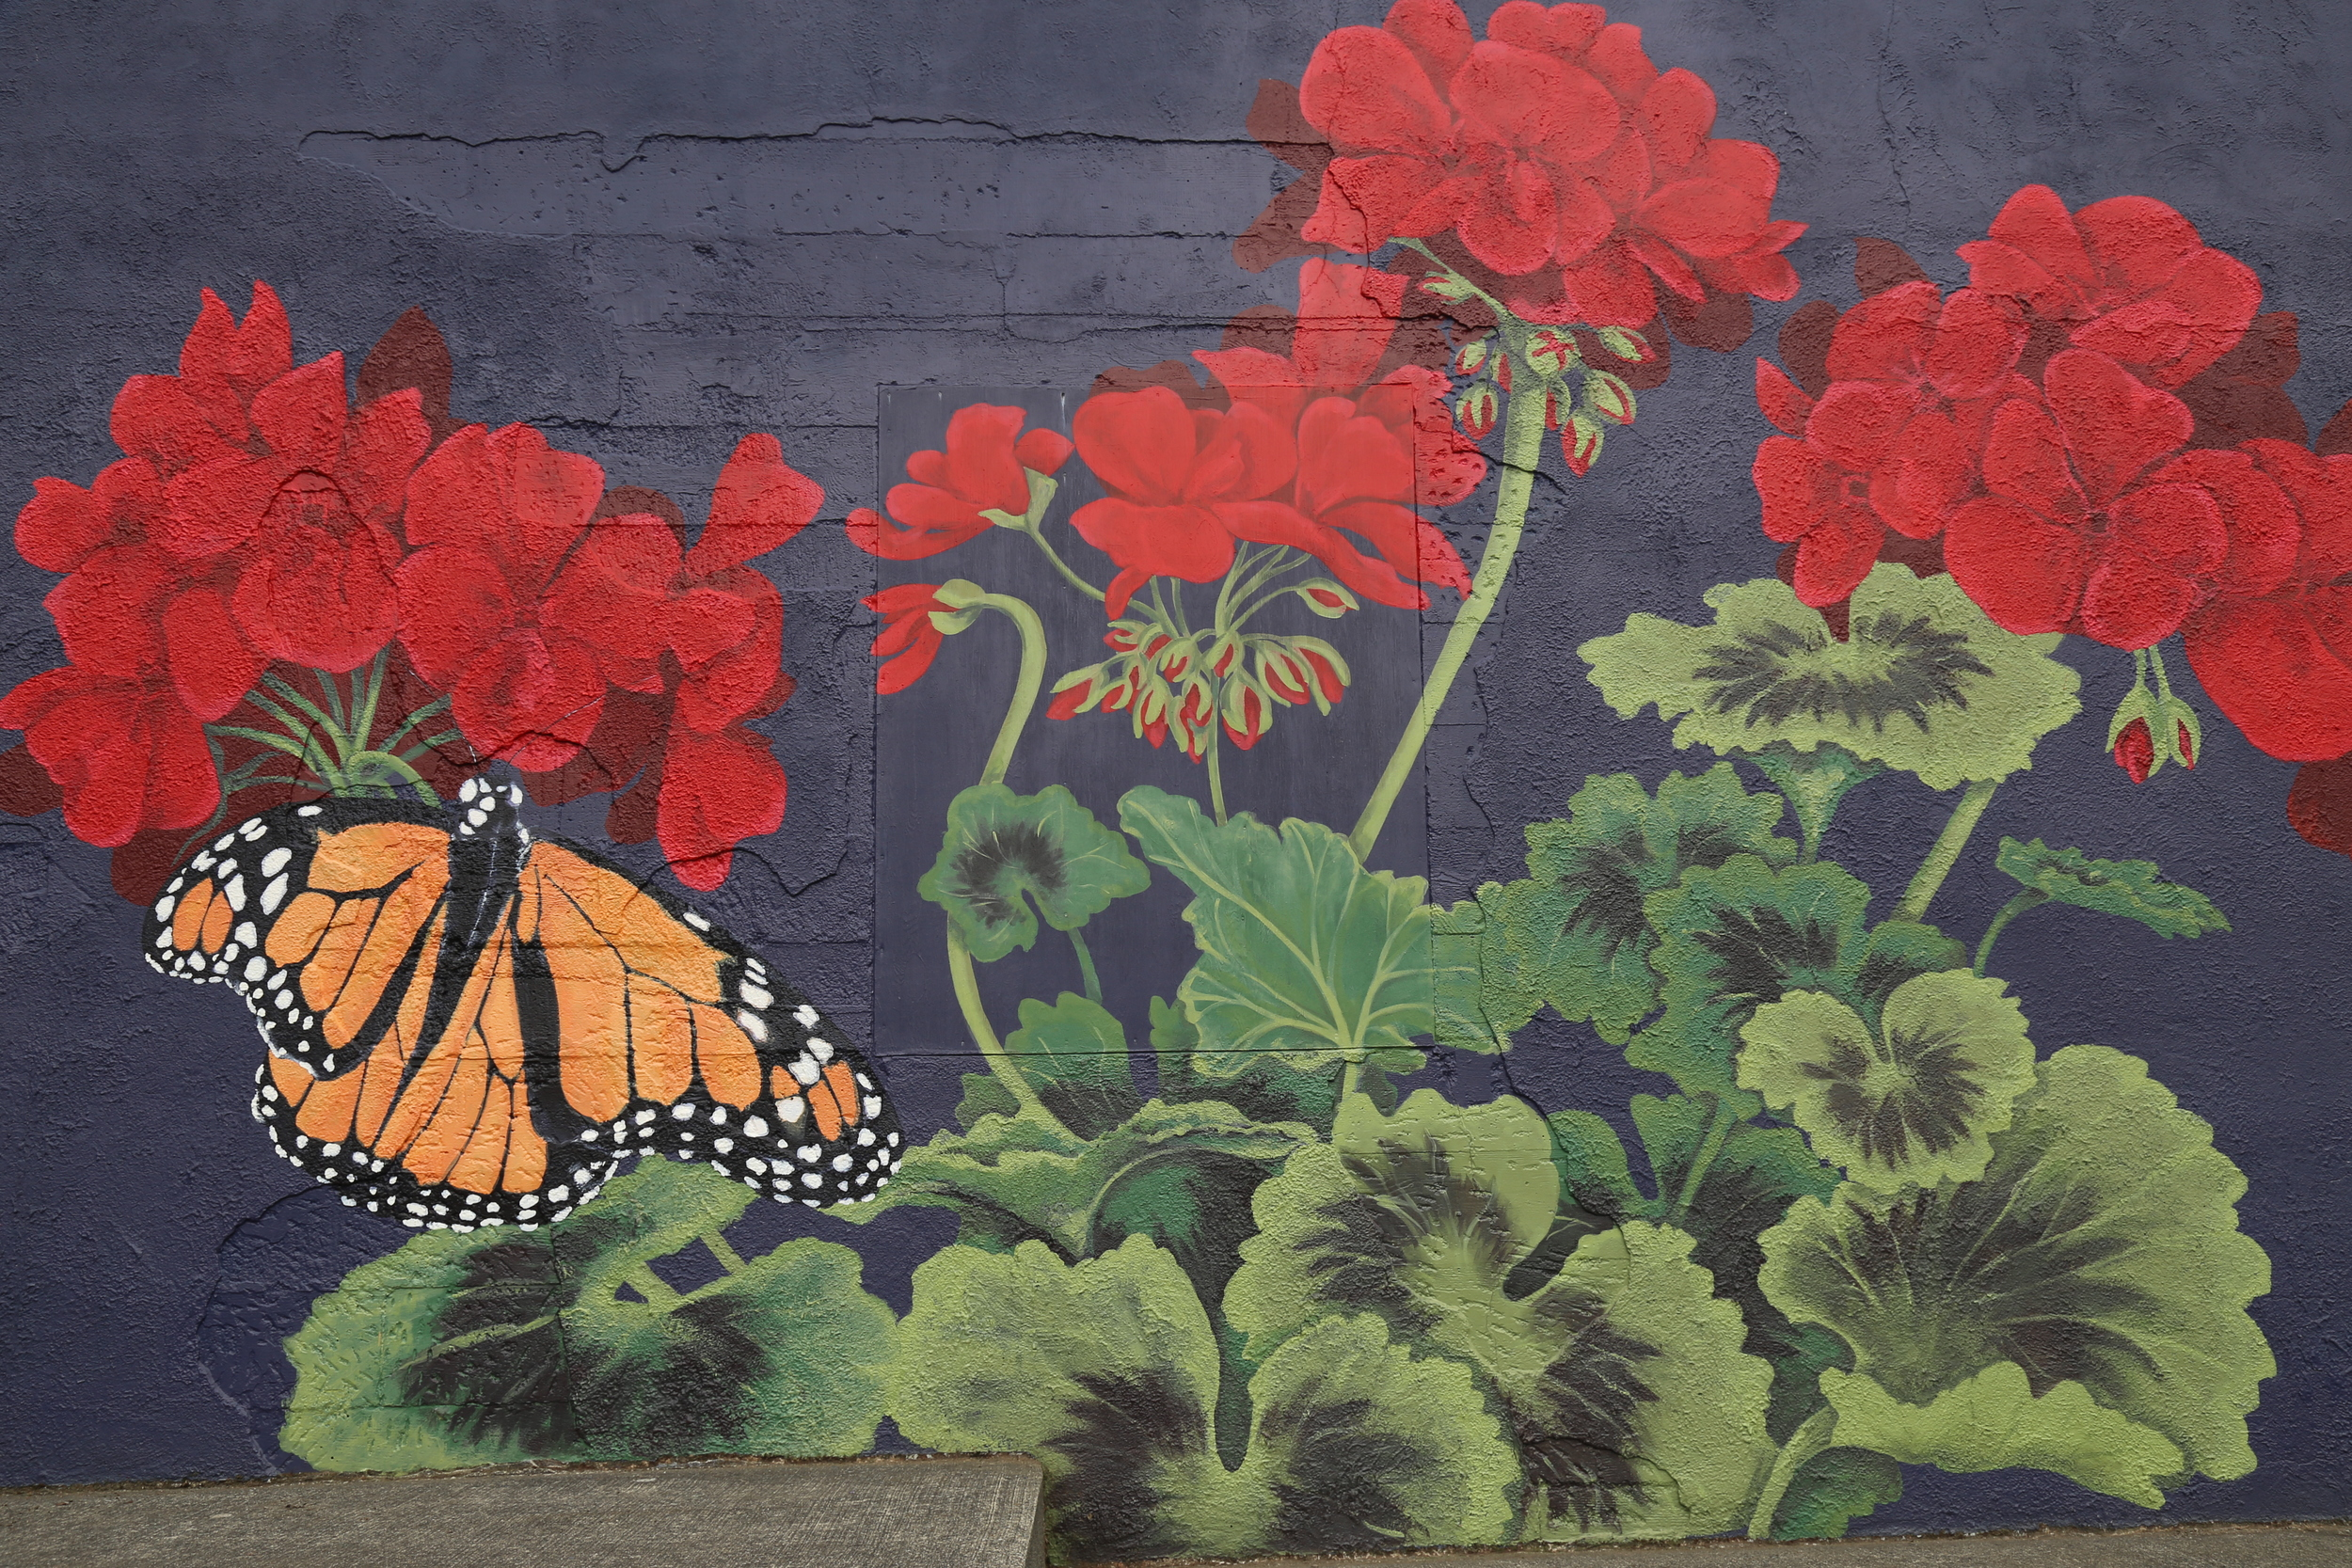 This pretty mural is painted on the side of the soda shop